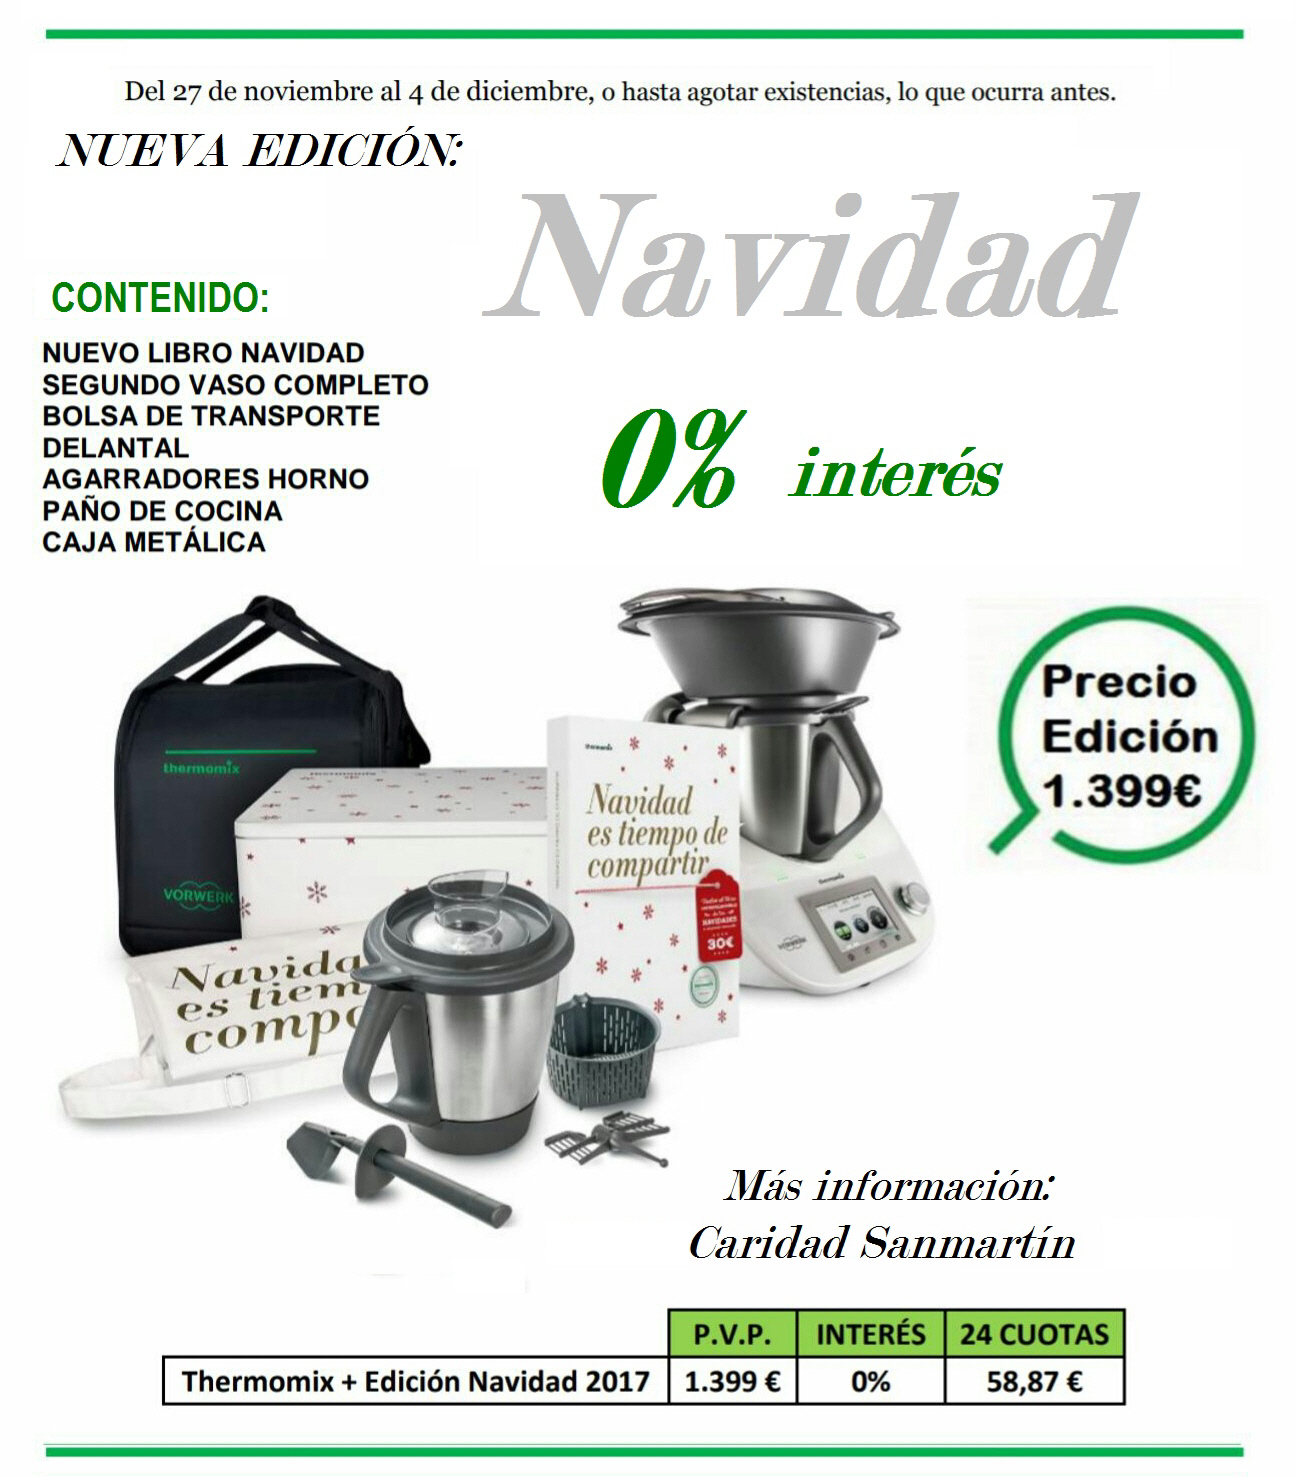 oferta thermomix edici n navidad 2017 financia sin intereses noticias blog blog de. Black Bedroom Furniture Sets. Home Design Ideas